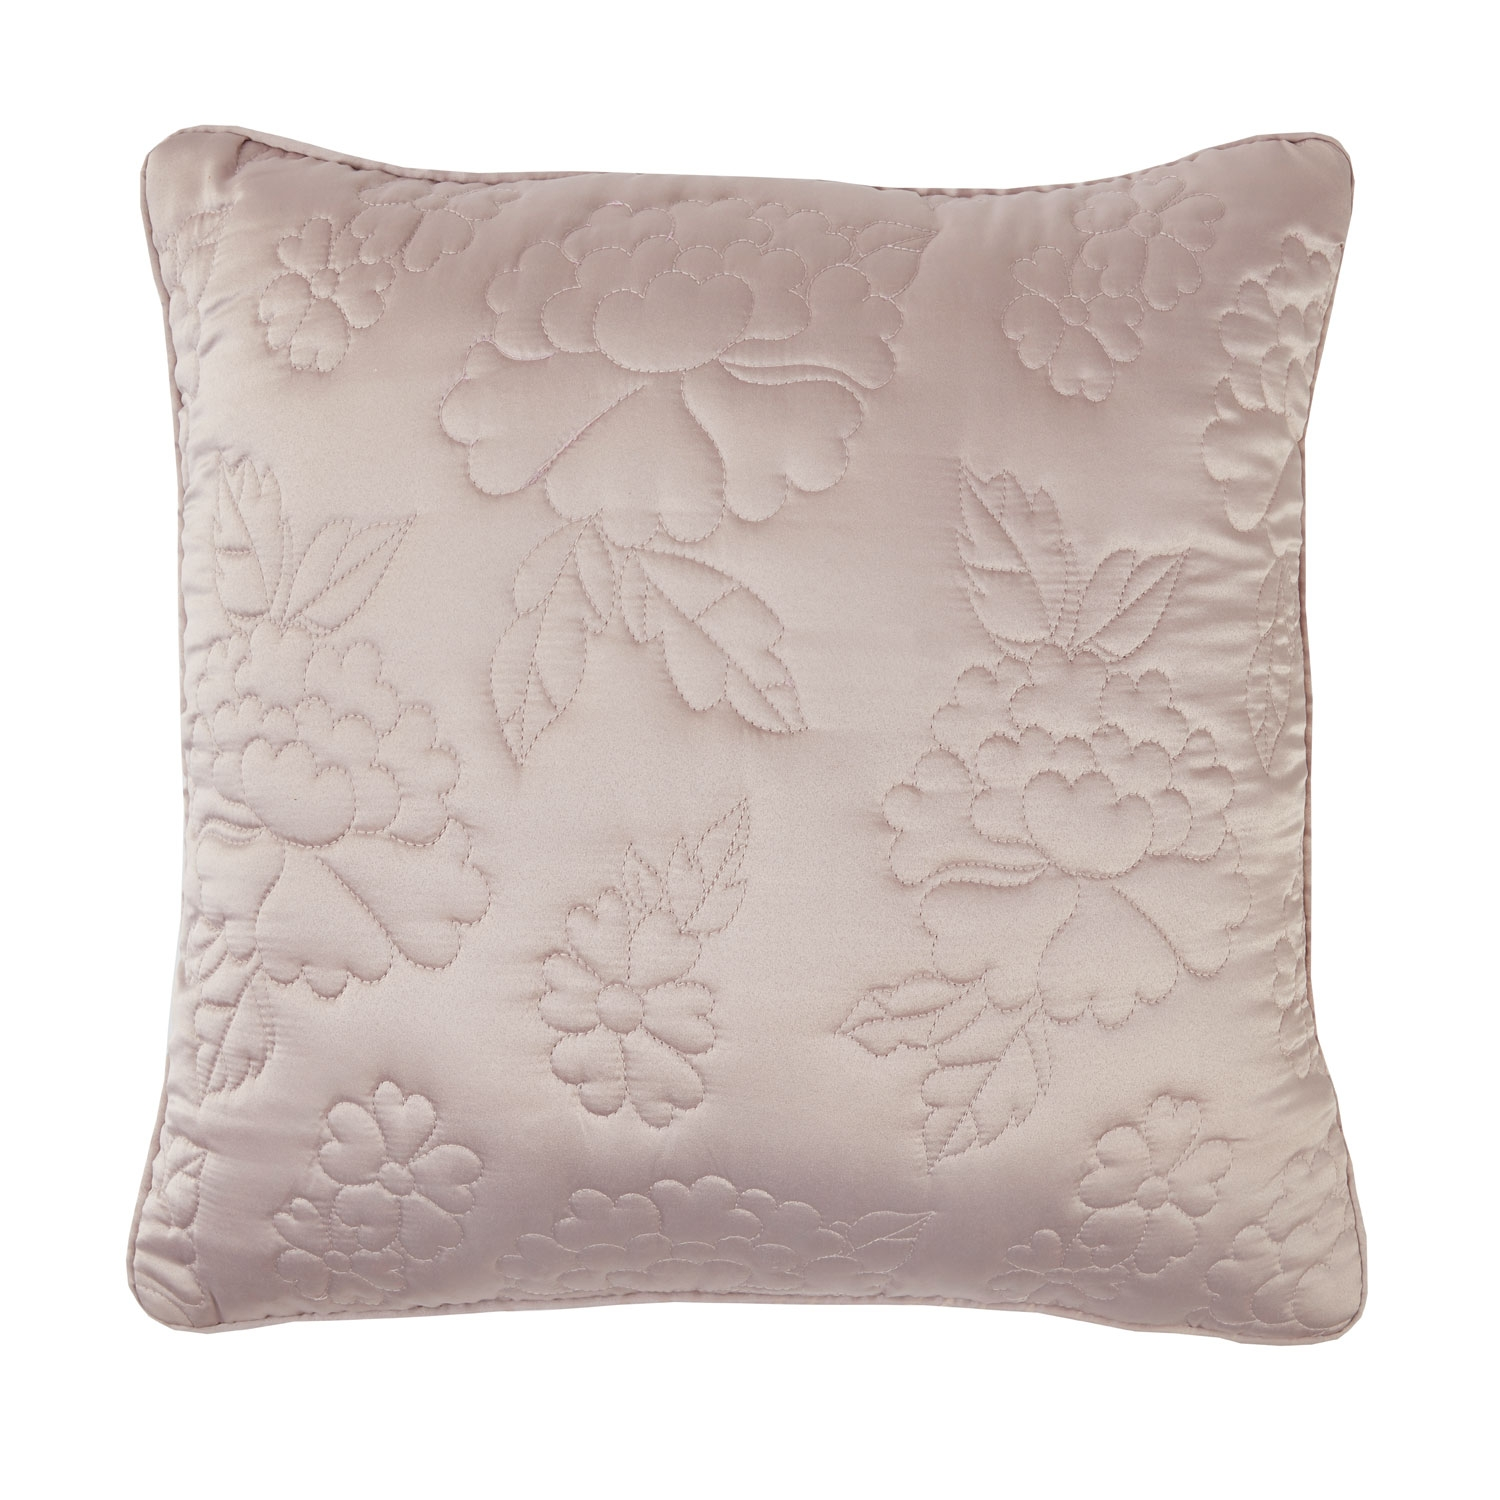 Ava Bird Mauve Embroidered Filled Square Cushion